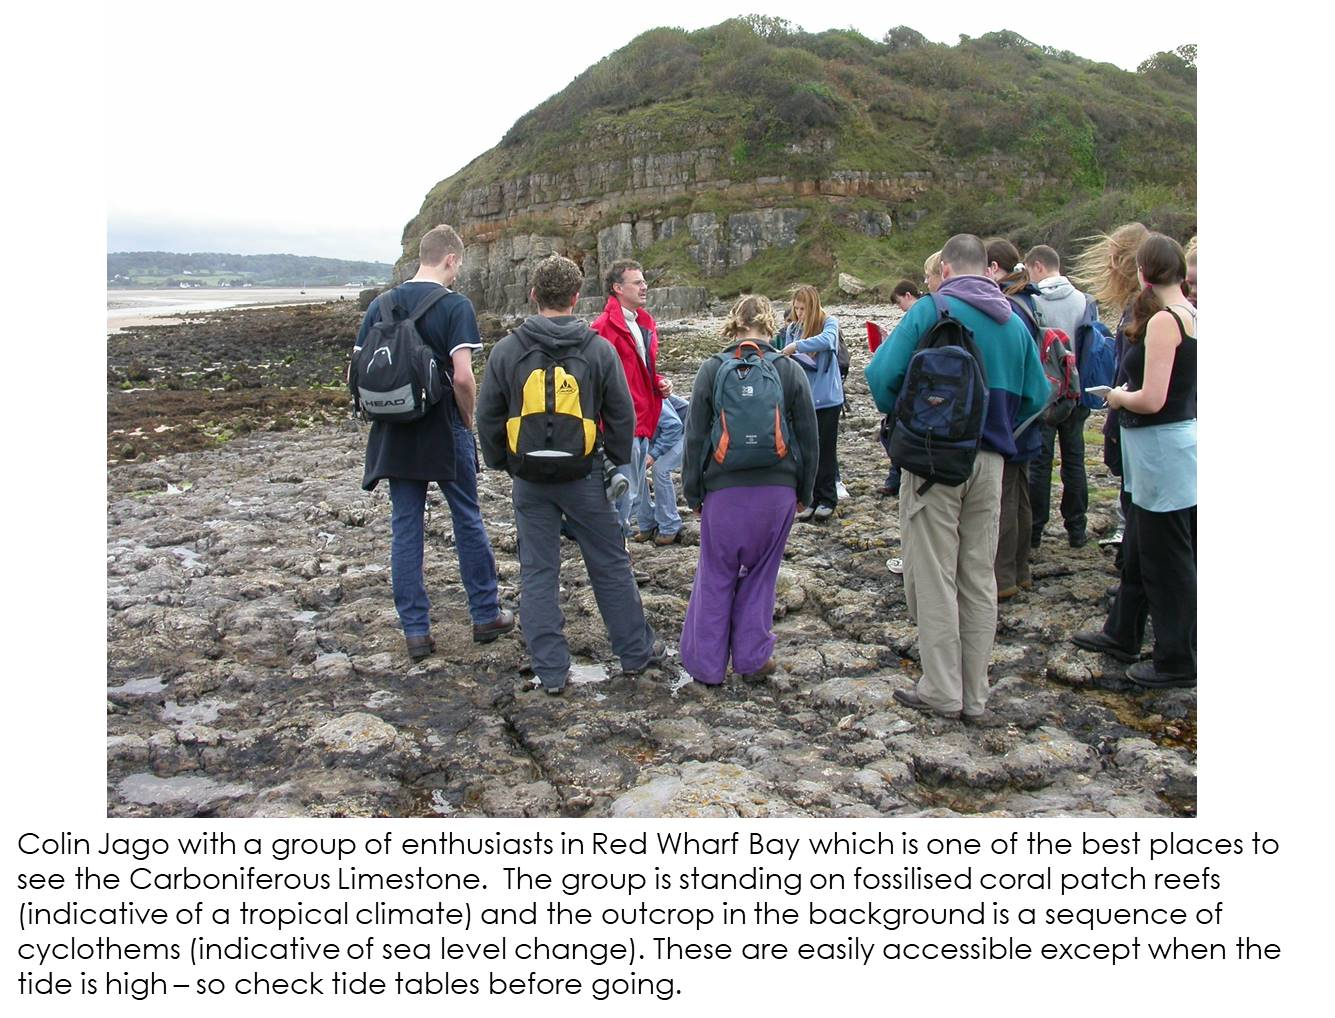 Colin Jago showing a group of people the geology at Red Wharf Bay